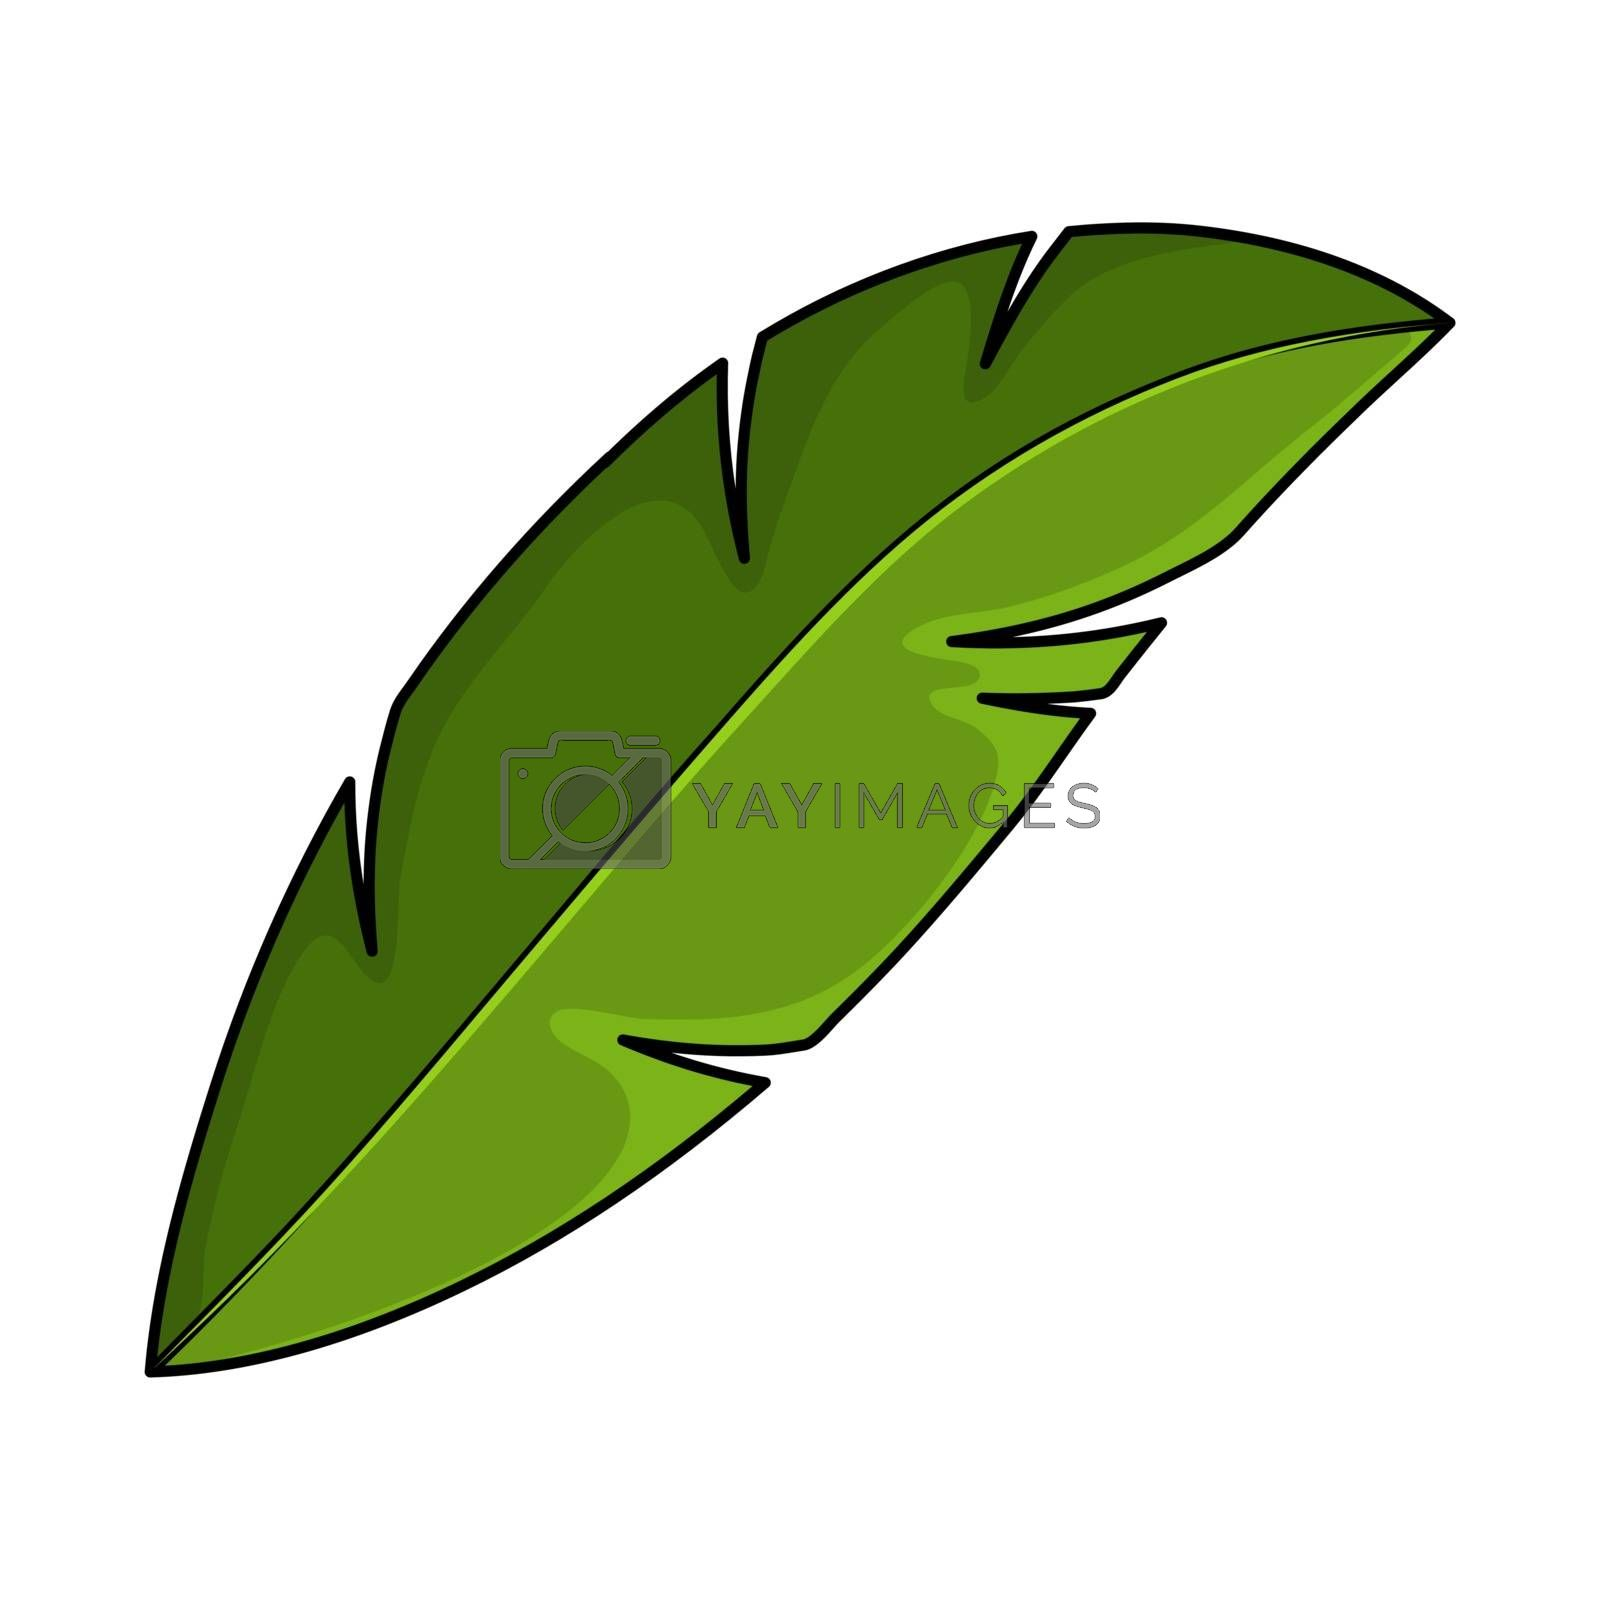 Coco palm foliage isolated on white. Single cartoon exotic frond. Part of tropical palm tree. Green coconut or banana leaf symbol or icon. Summertime simple leafage of jungle tree.